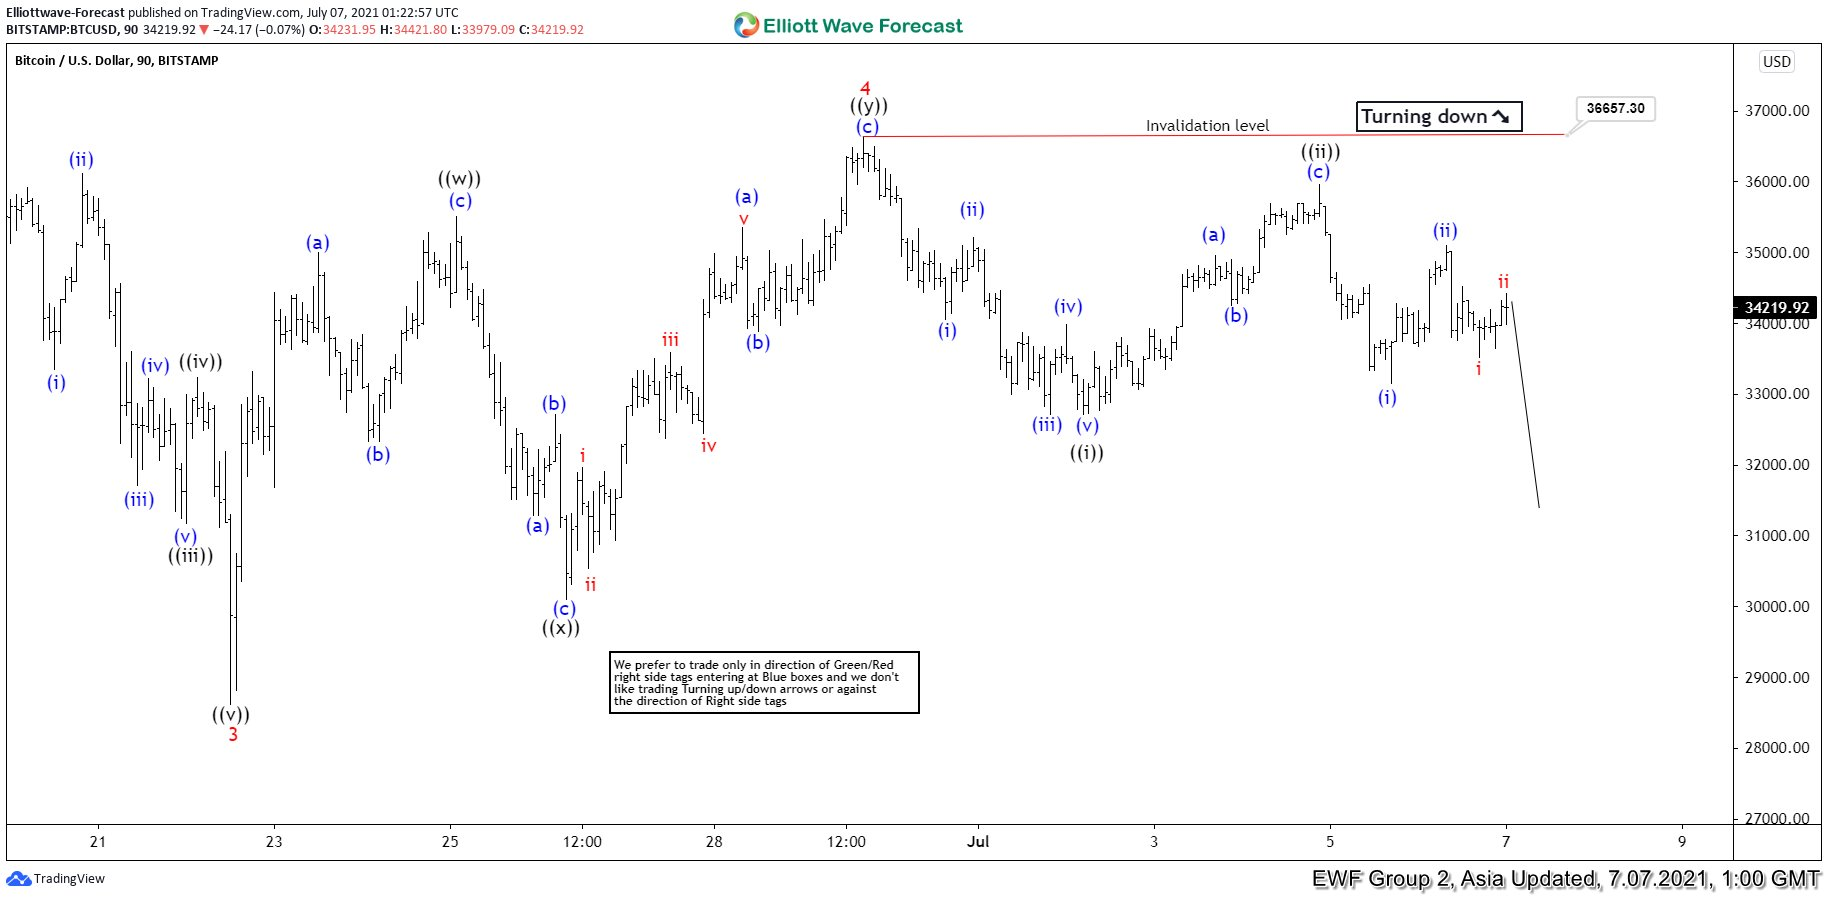 Elliott Wave View: Bitcoin (BTC) Looking for Further Downside